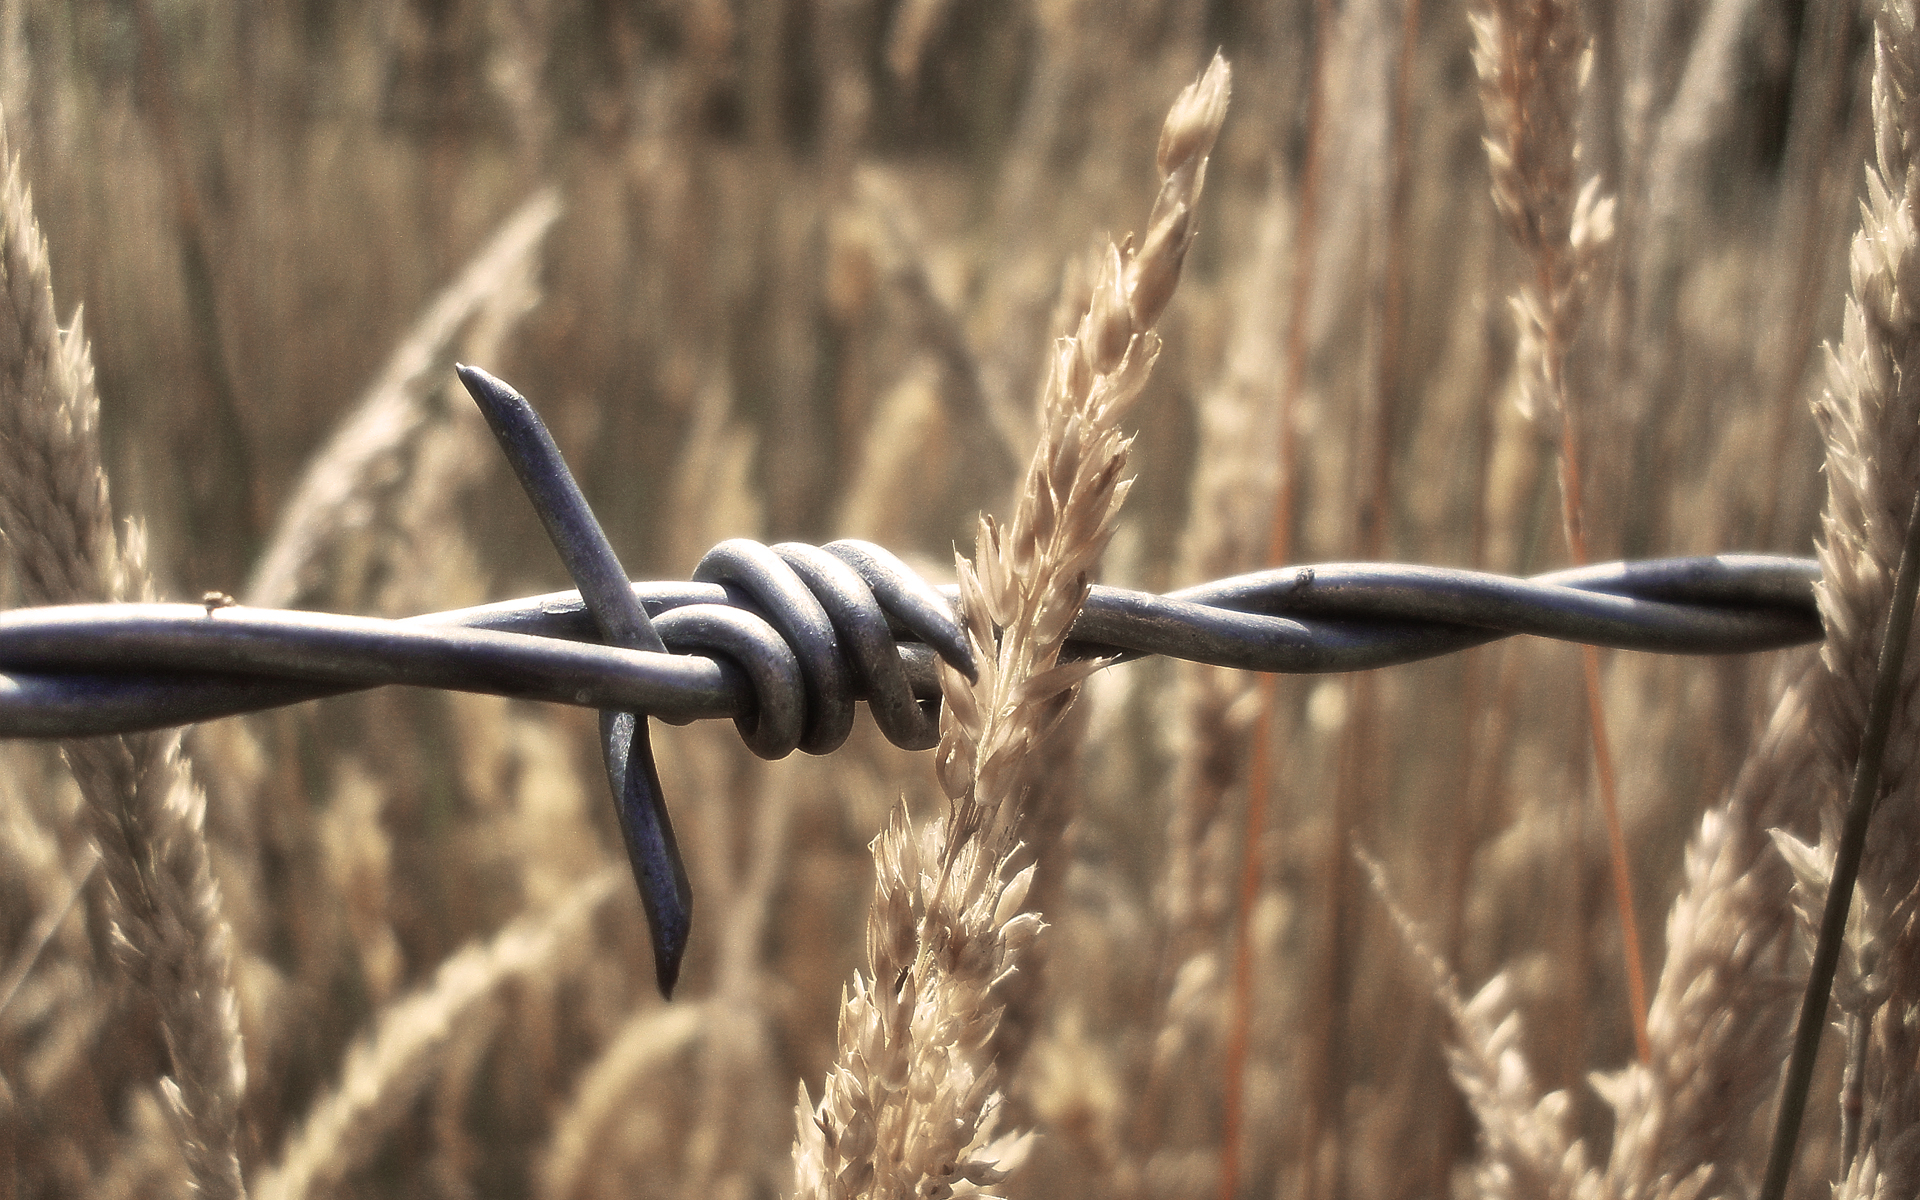 Barbed Wire Wallpaper barb wire wallpaper 54319 1920x1200 px ~ hdwallsource